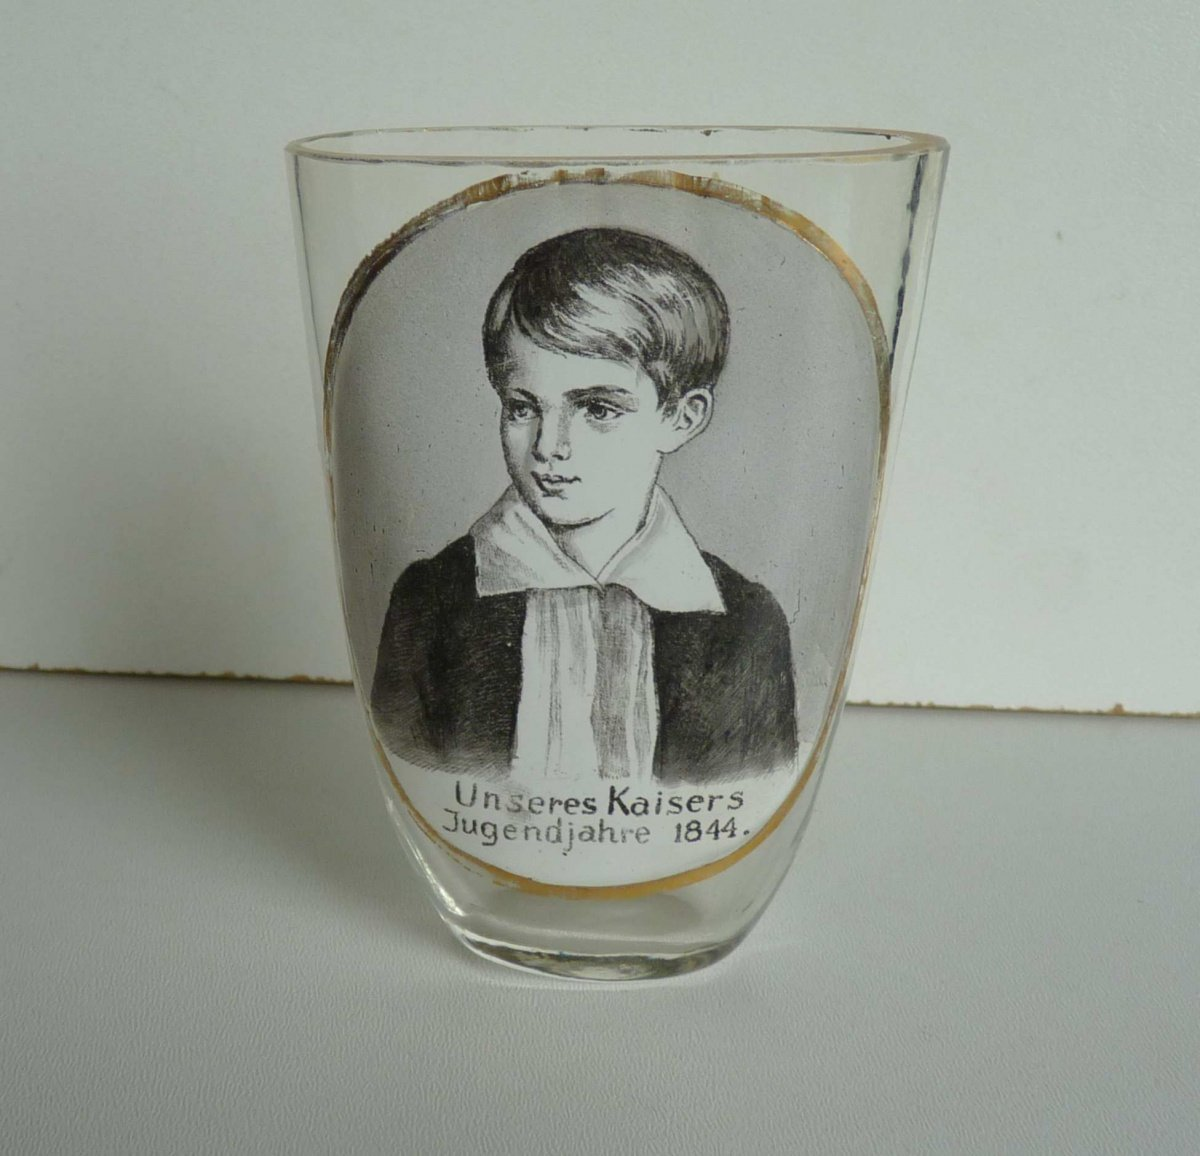 Unique oval glass with portrait